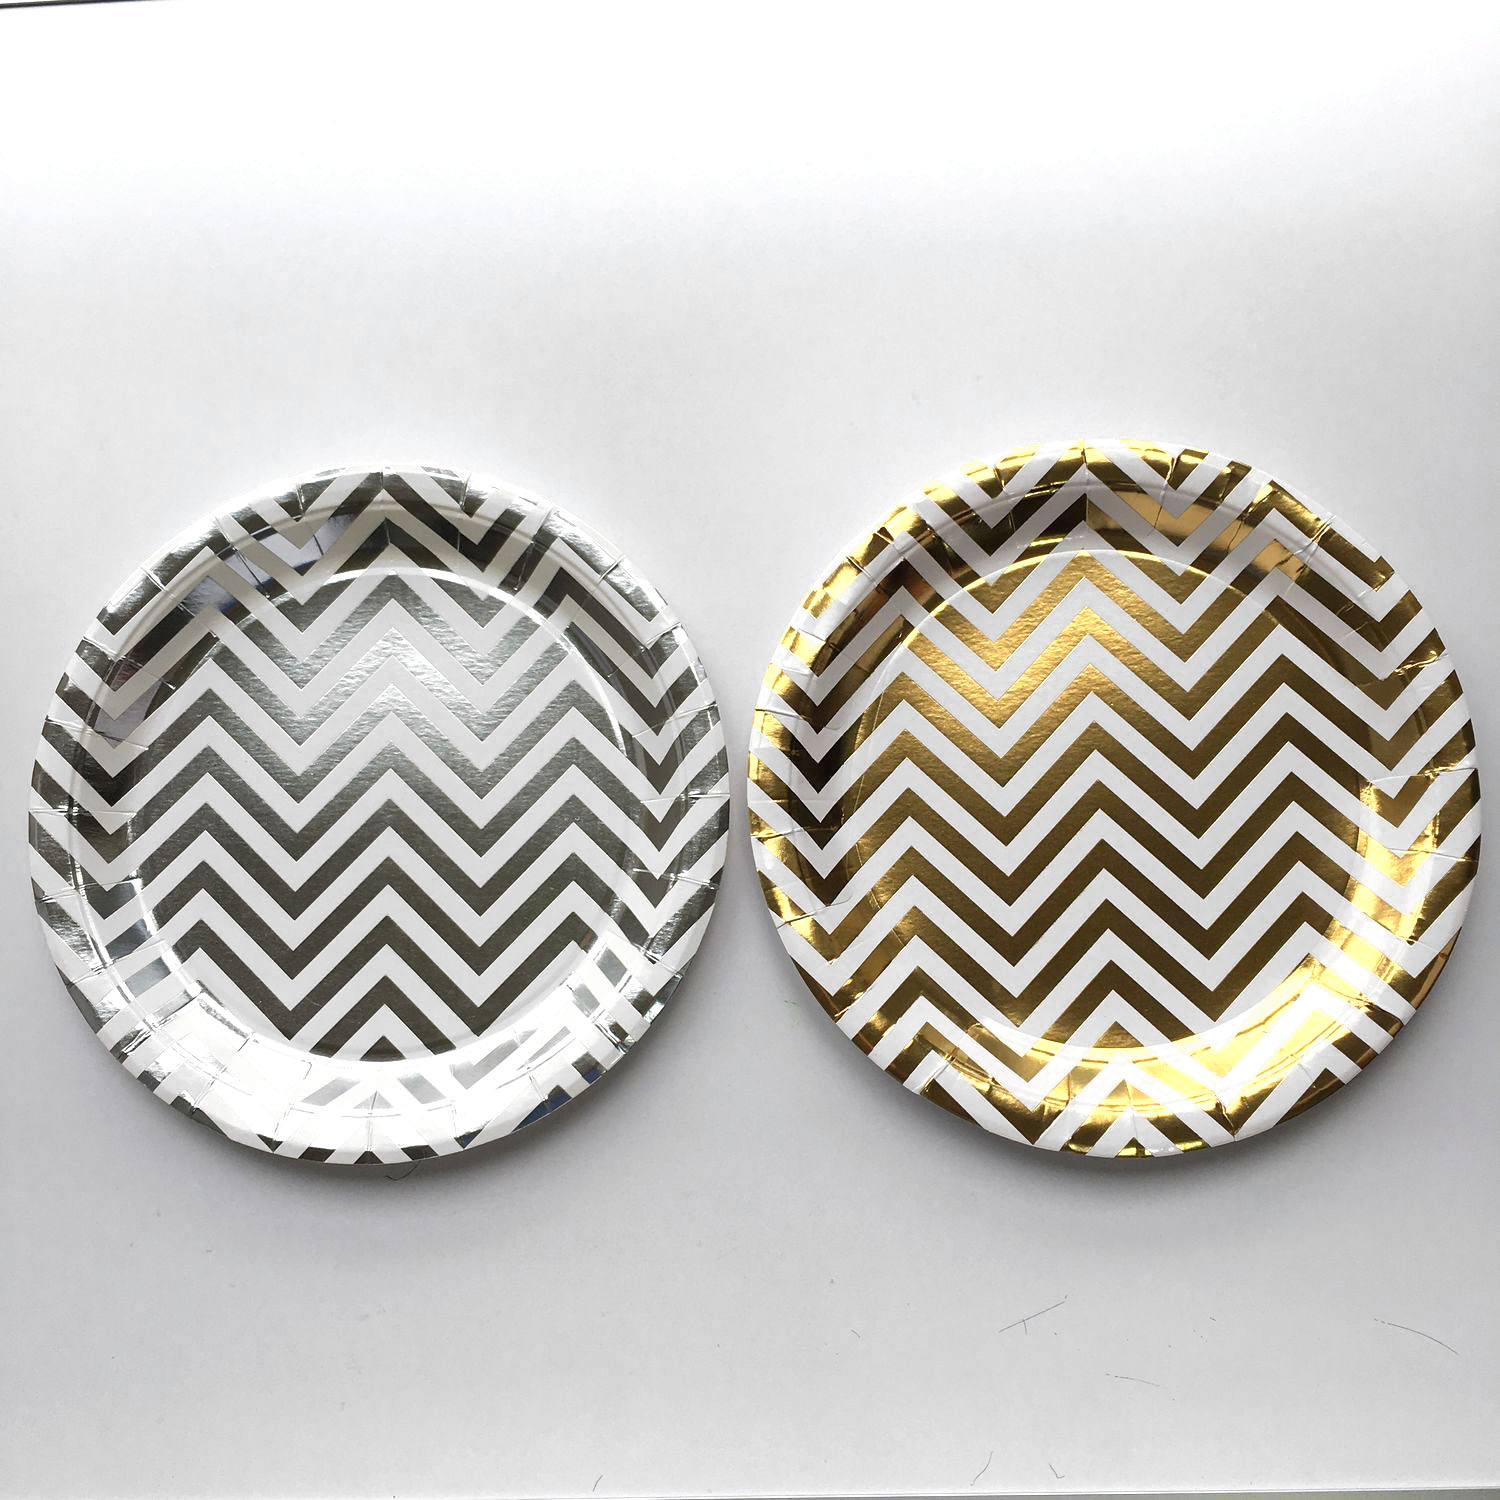 Chevron stripes plates (gold/silver) by 10's